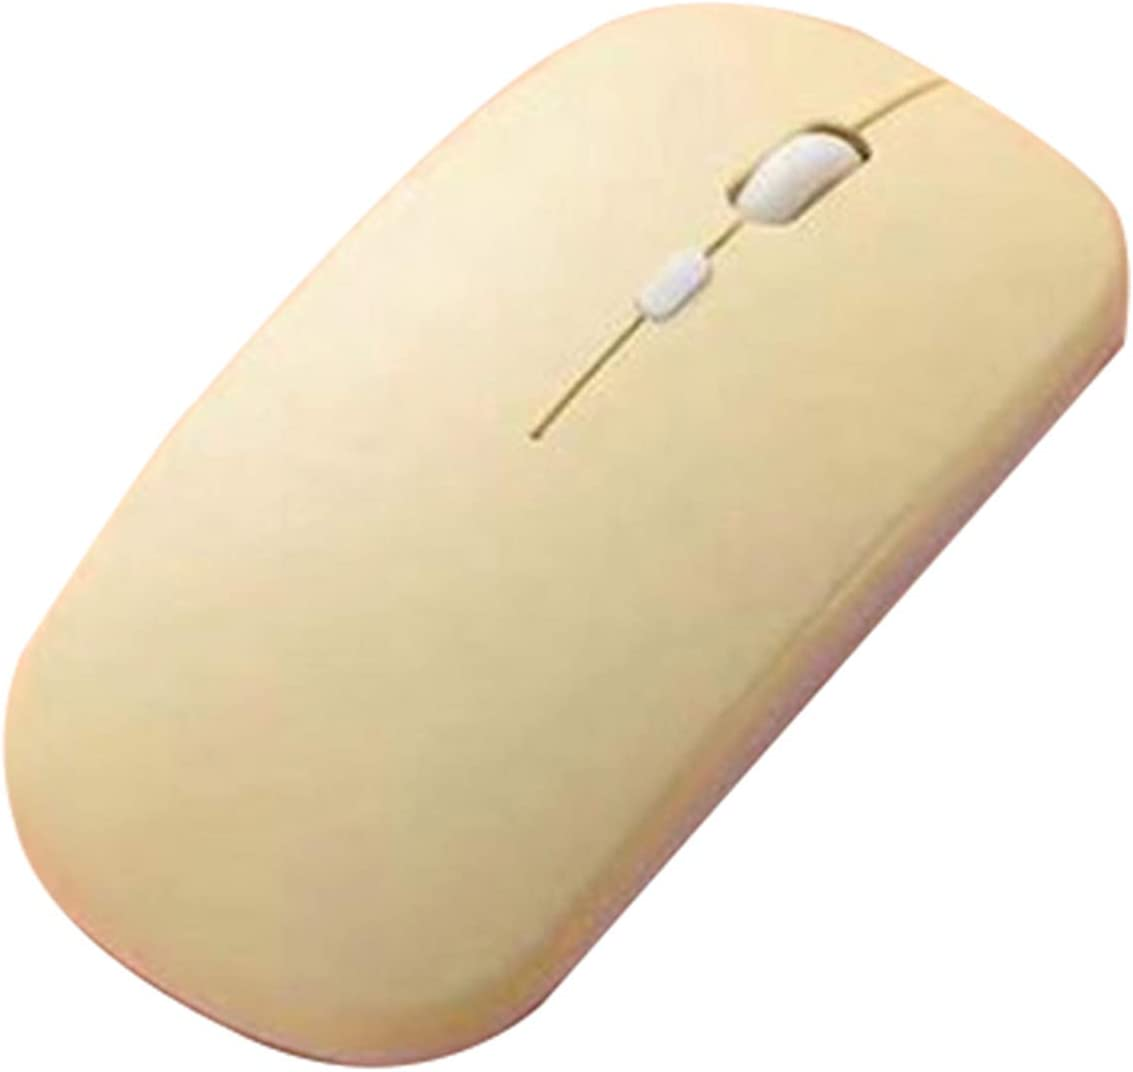 OCUhome Wireless Mouse Compatible with iPad, Mini Wireless 800/1200/1600DPI Solid Color Mouse Keyboard Computer Accessory Yellow 1